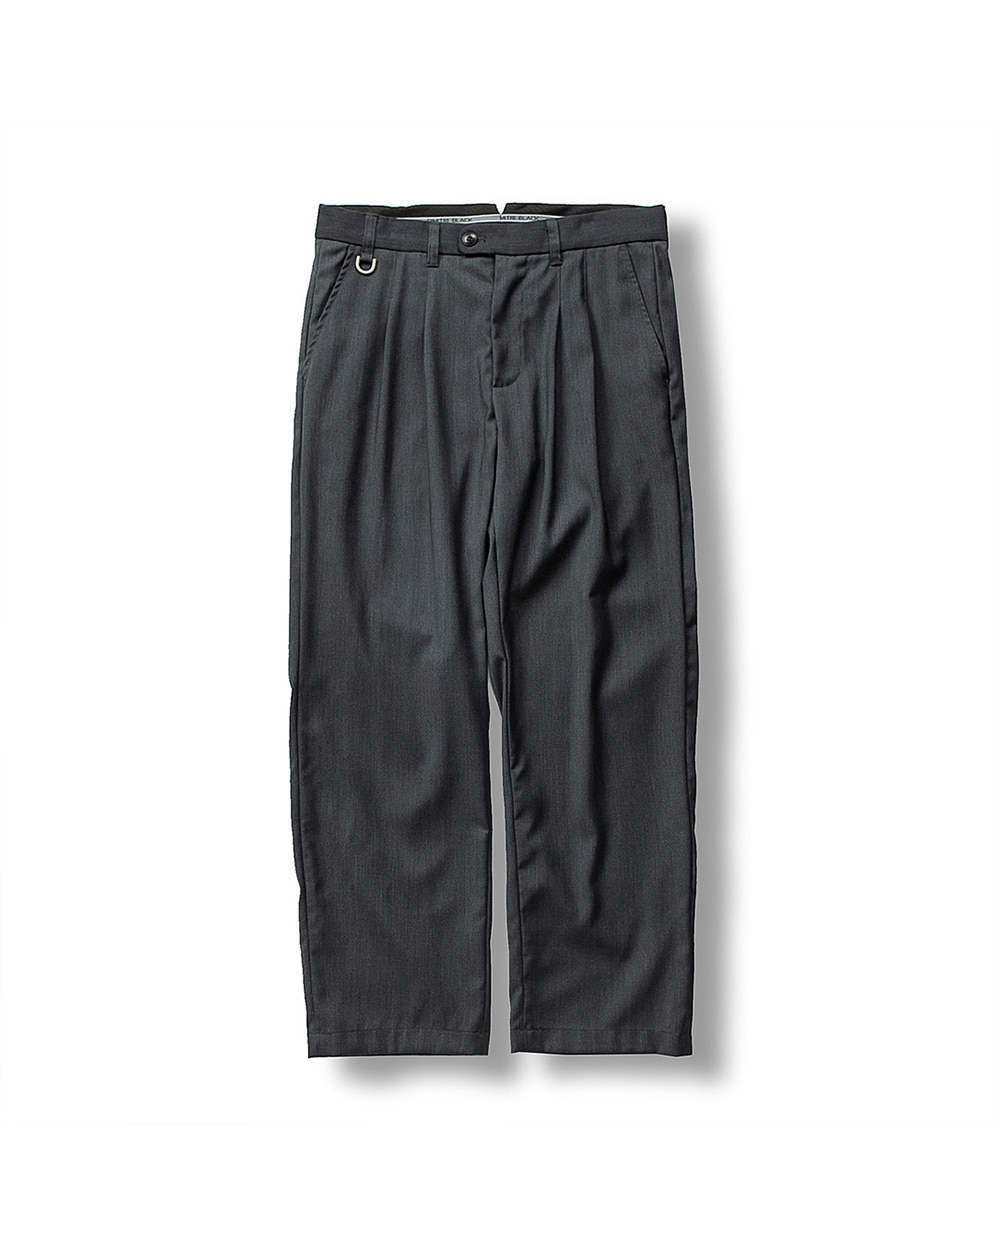 (FW) DOUBLE PLEATS TROUSER DARK GRAY